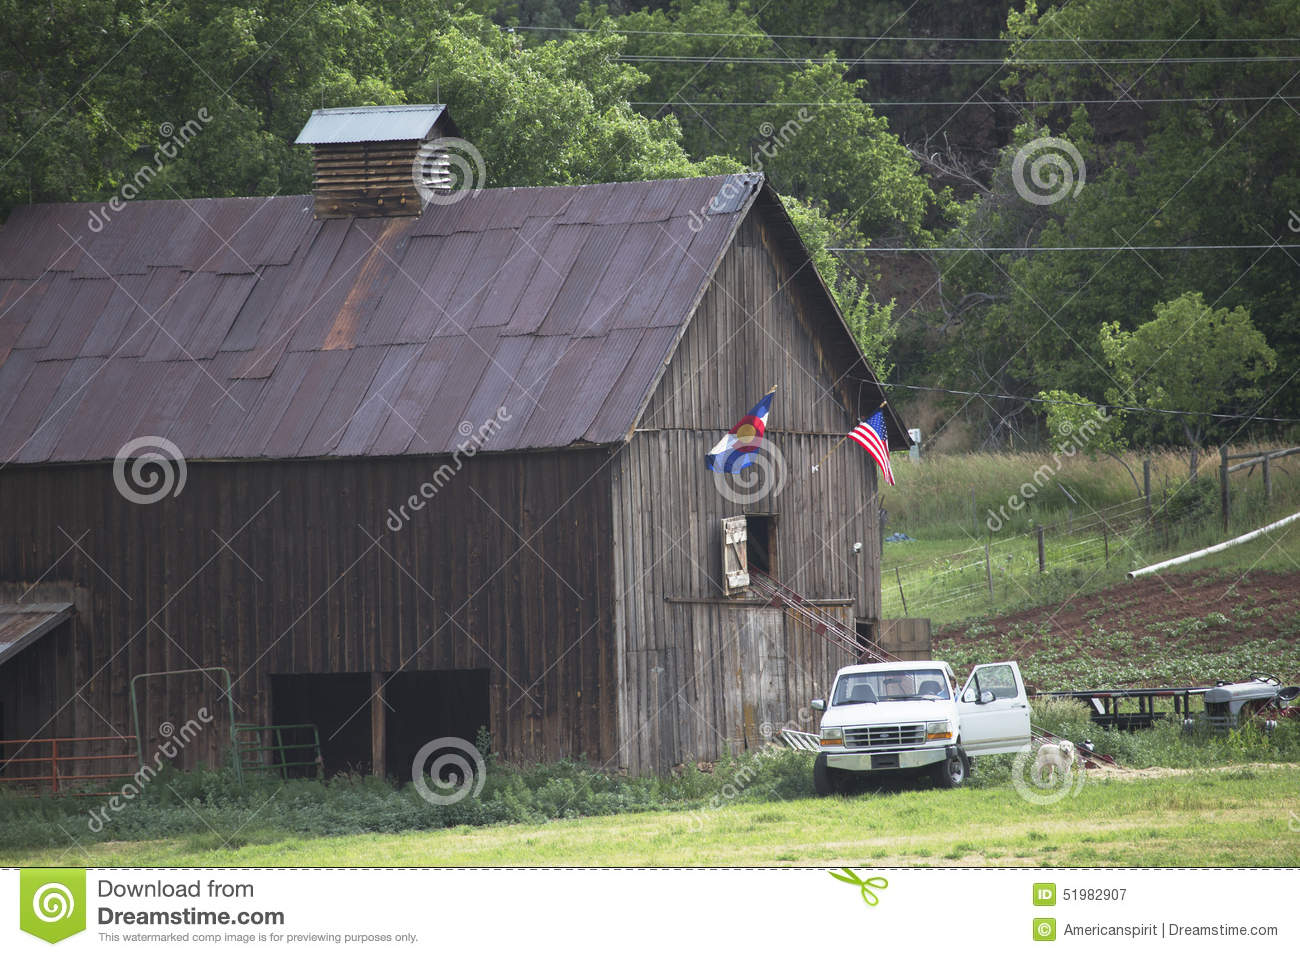 Colorado and US Flag hang on barn with white pickup truck, Colorado, USA